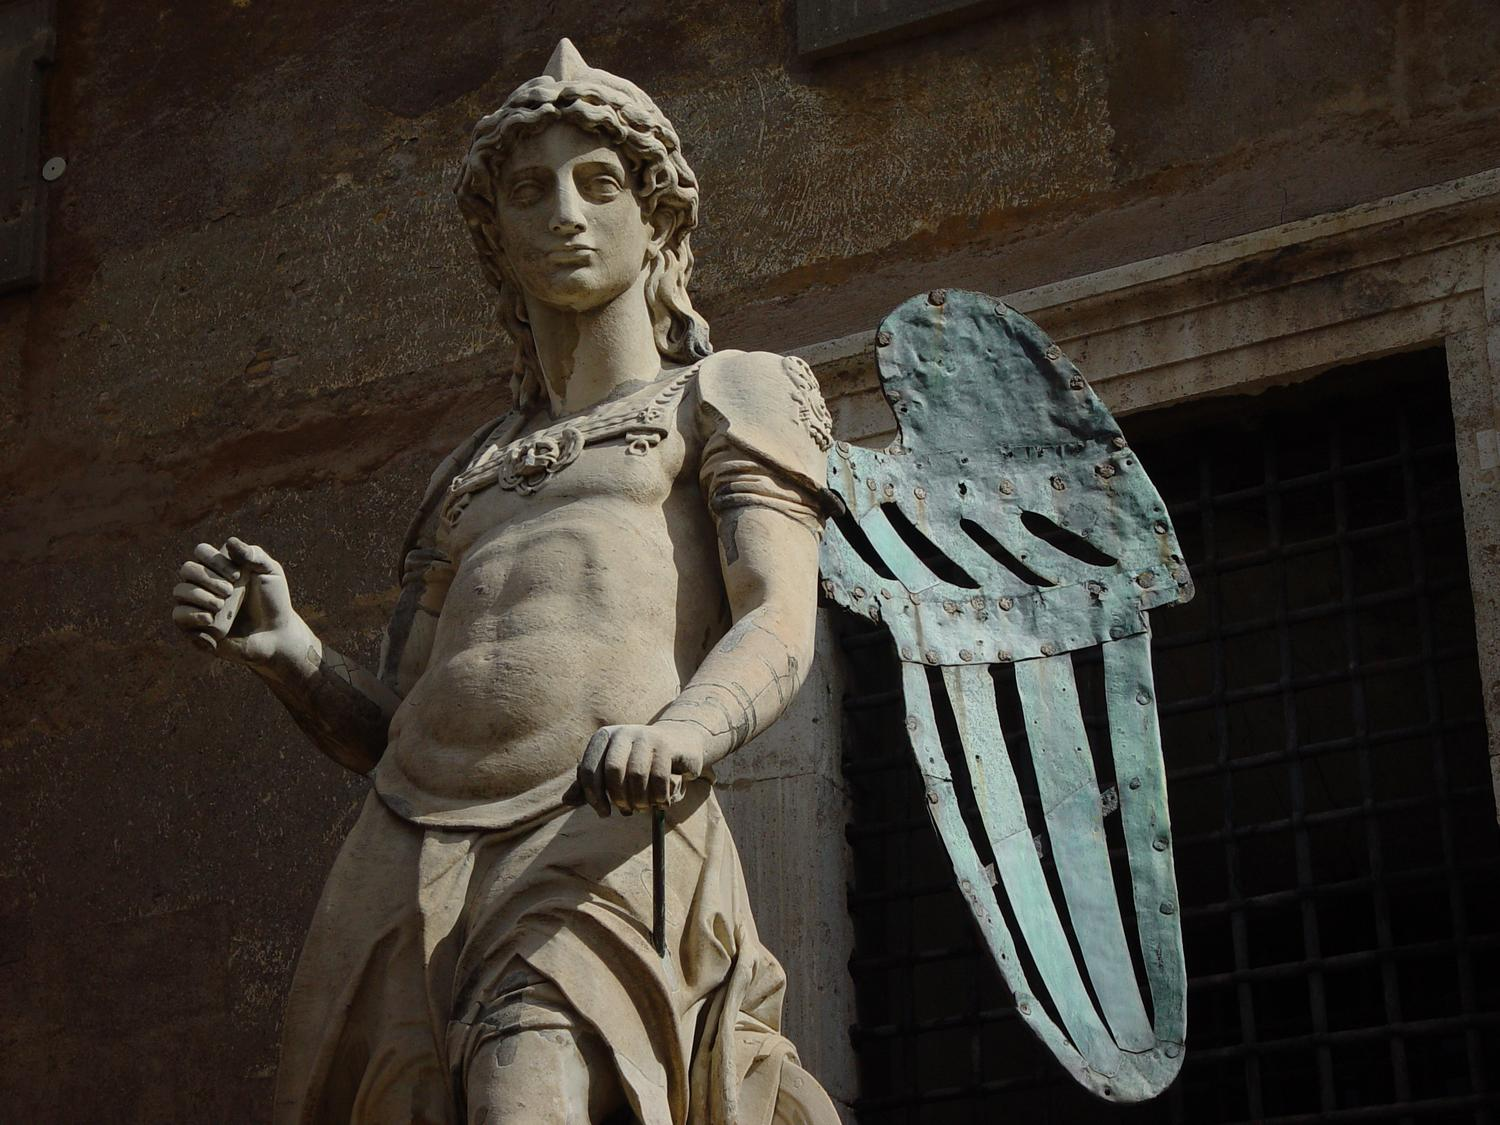 - Photography becomes art - Making an angel - Angel at Castel Sant'Angelo - Rome, Italy - The archangel Michael decided to sheath his sword and stop killing Romans with plague--this statue by Raffaello da Montelupo (1504–1566) commemorates the end of an epidemic in 590. - Sony DSC-F707 - Tony Karp, design, art, photography, techno-impressionist, techno-impressionism, aerial photography , drone , drones , dji , mavic pro , video , 3D printing - Books -